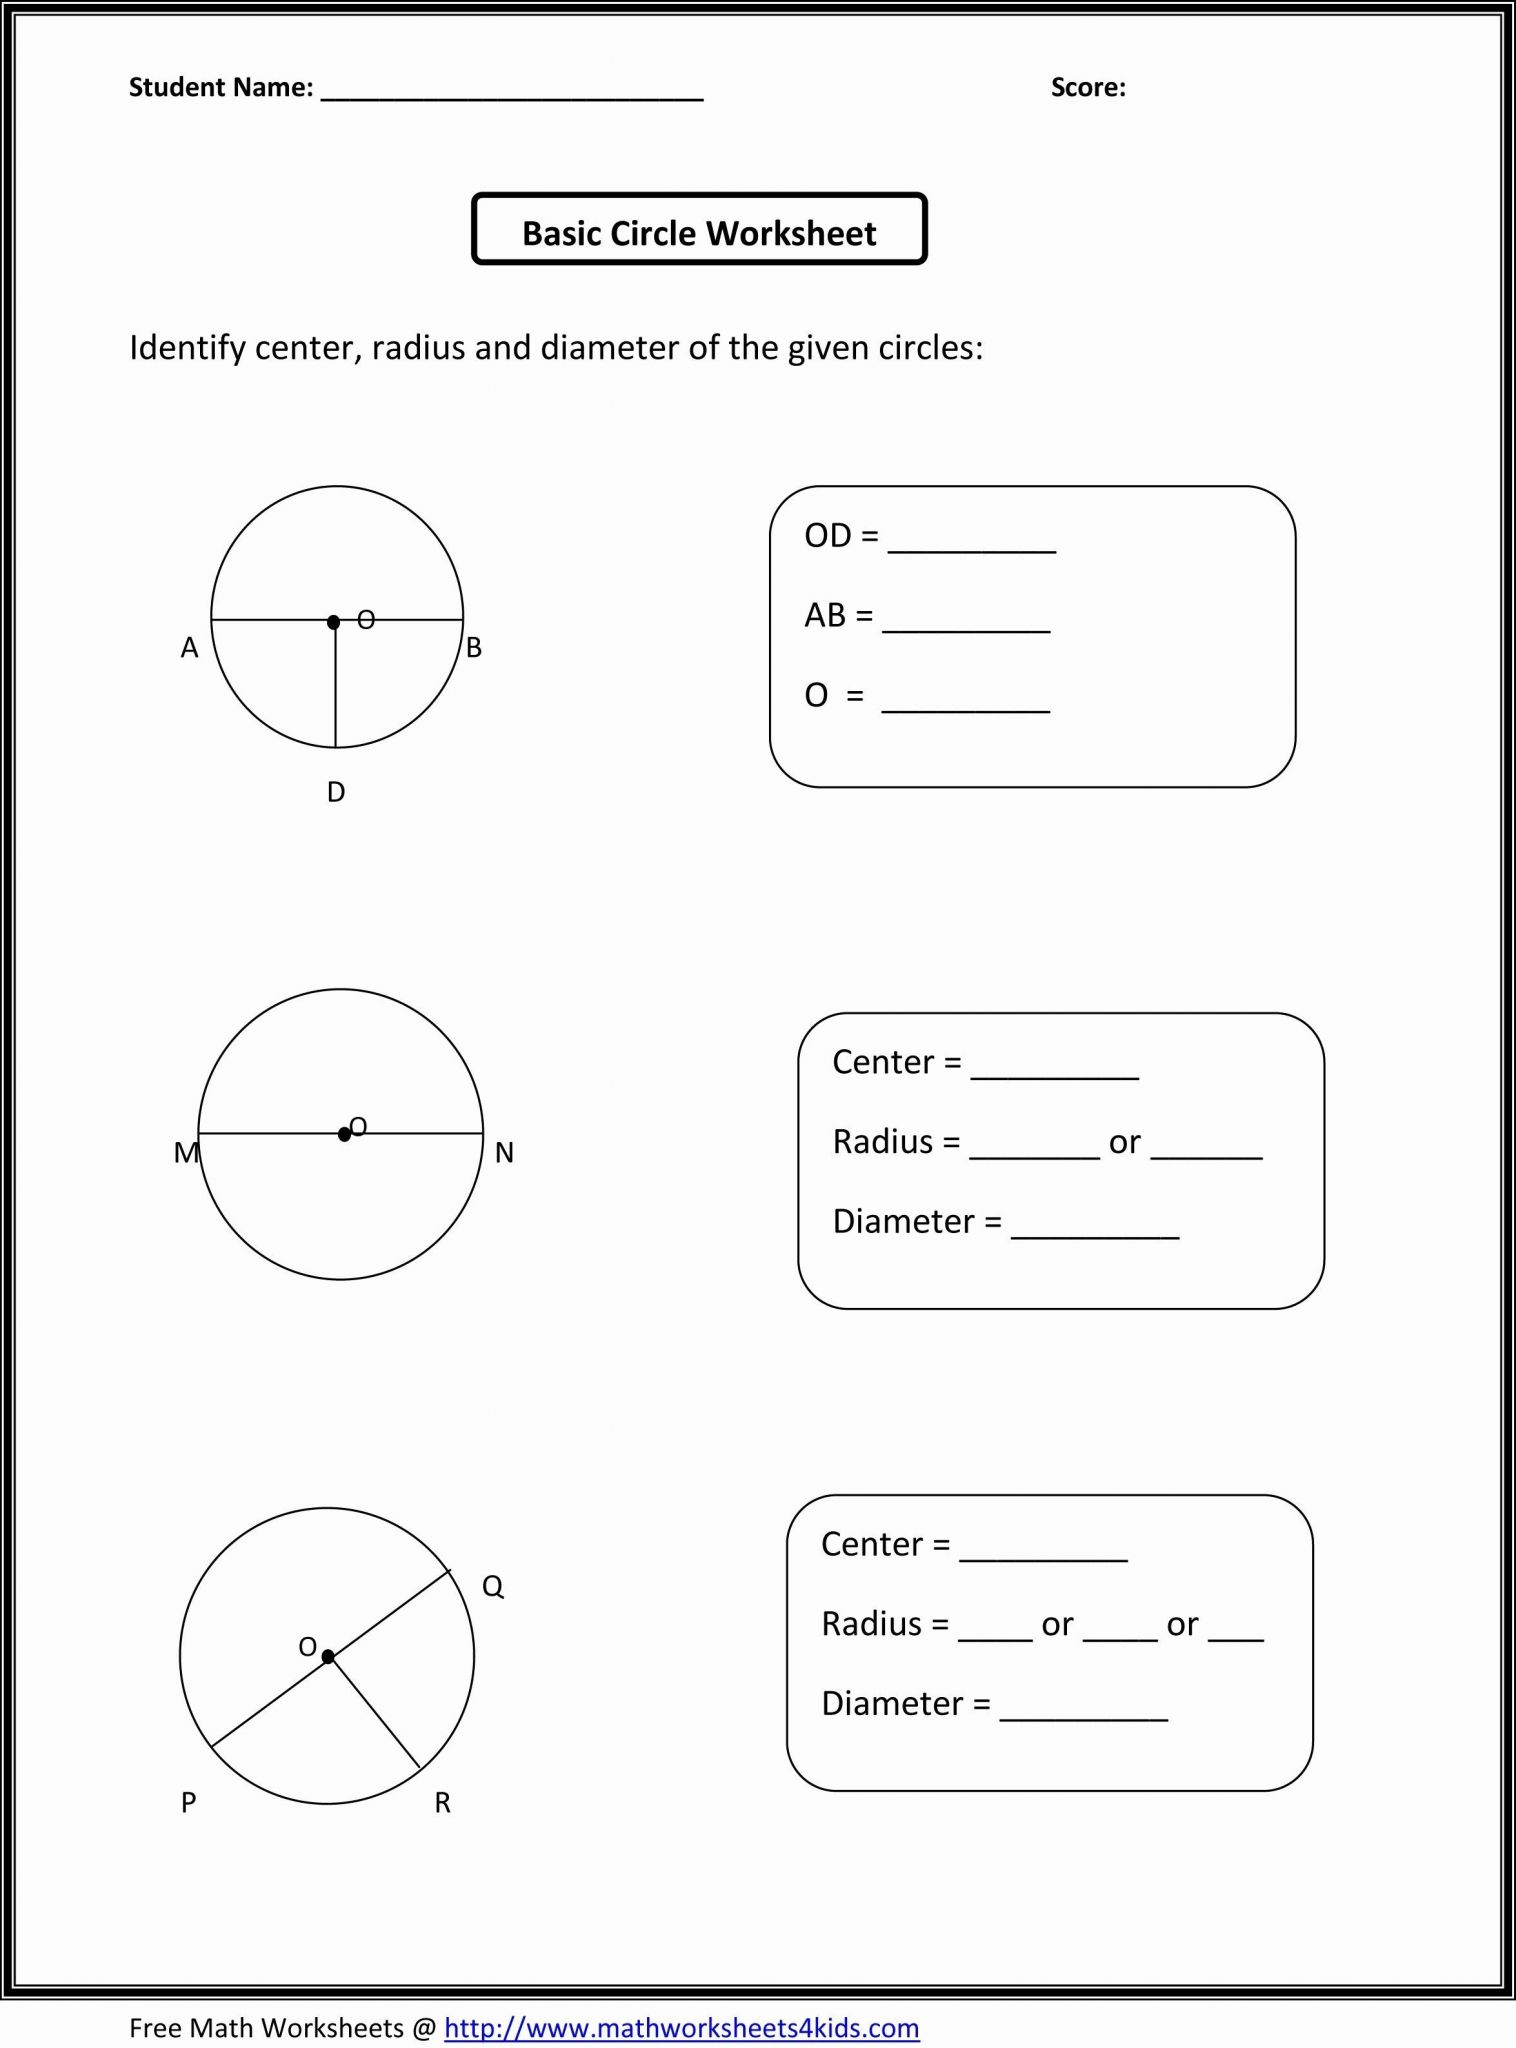 Systems Of Equations Substitution Method 3 Variables Worksheet